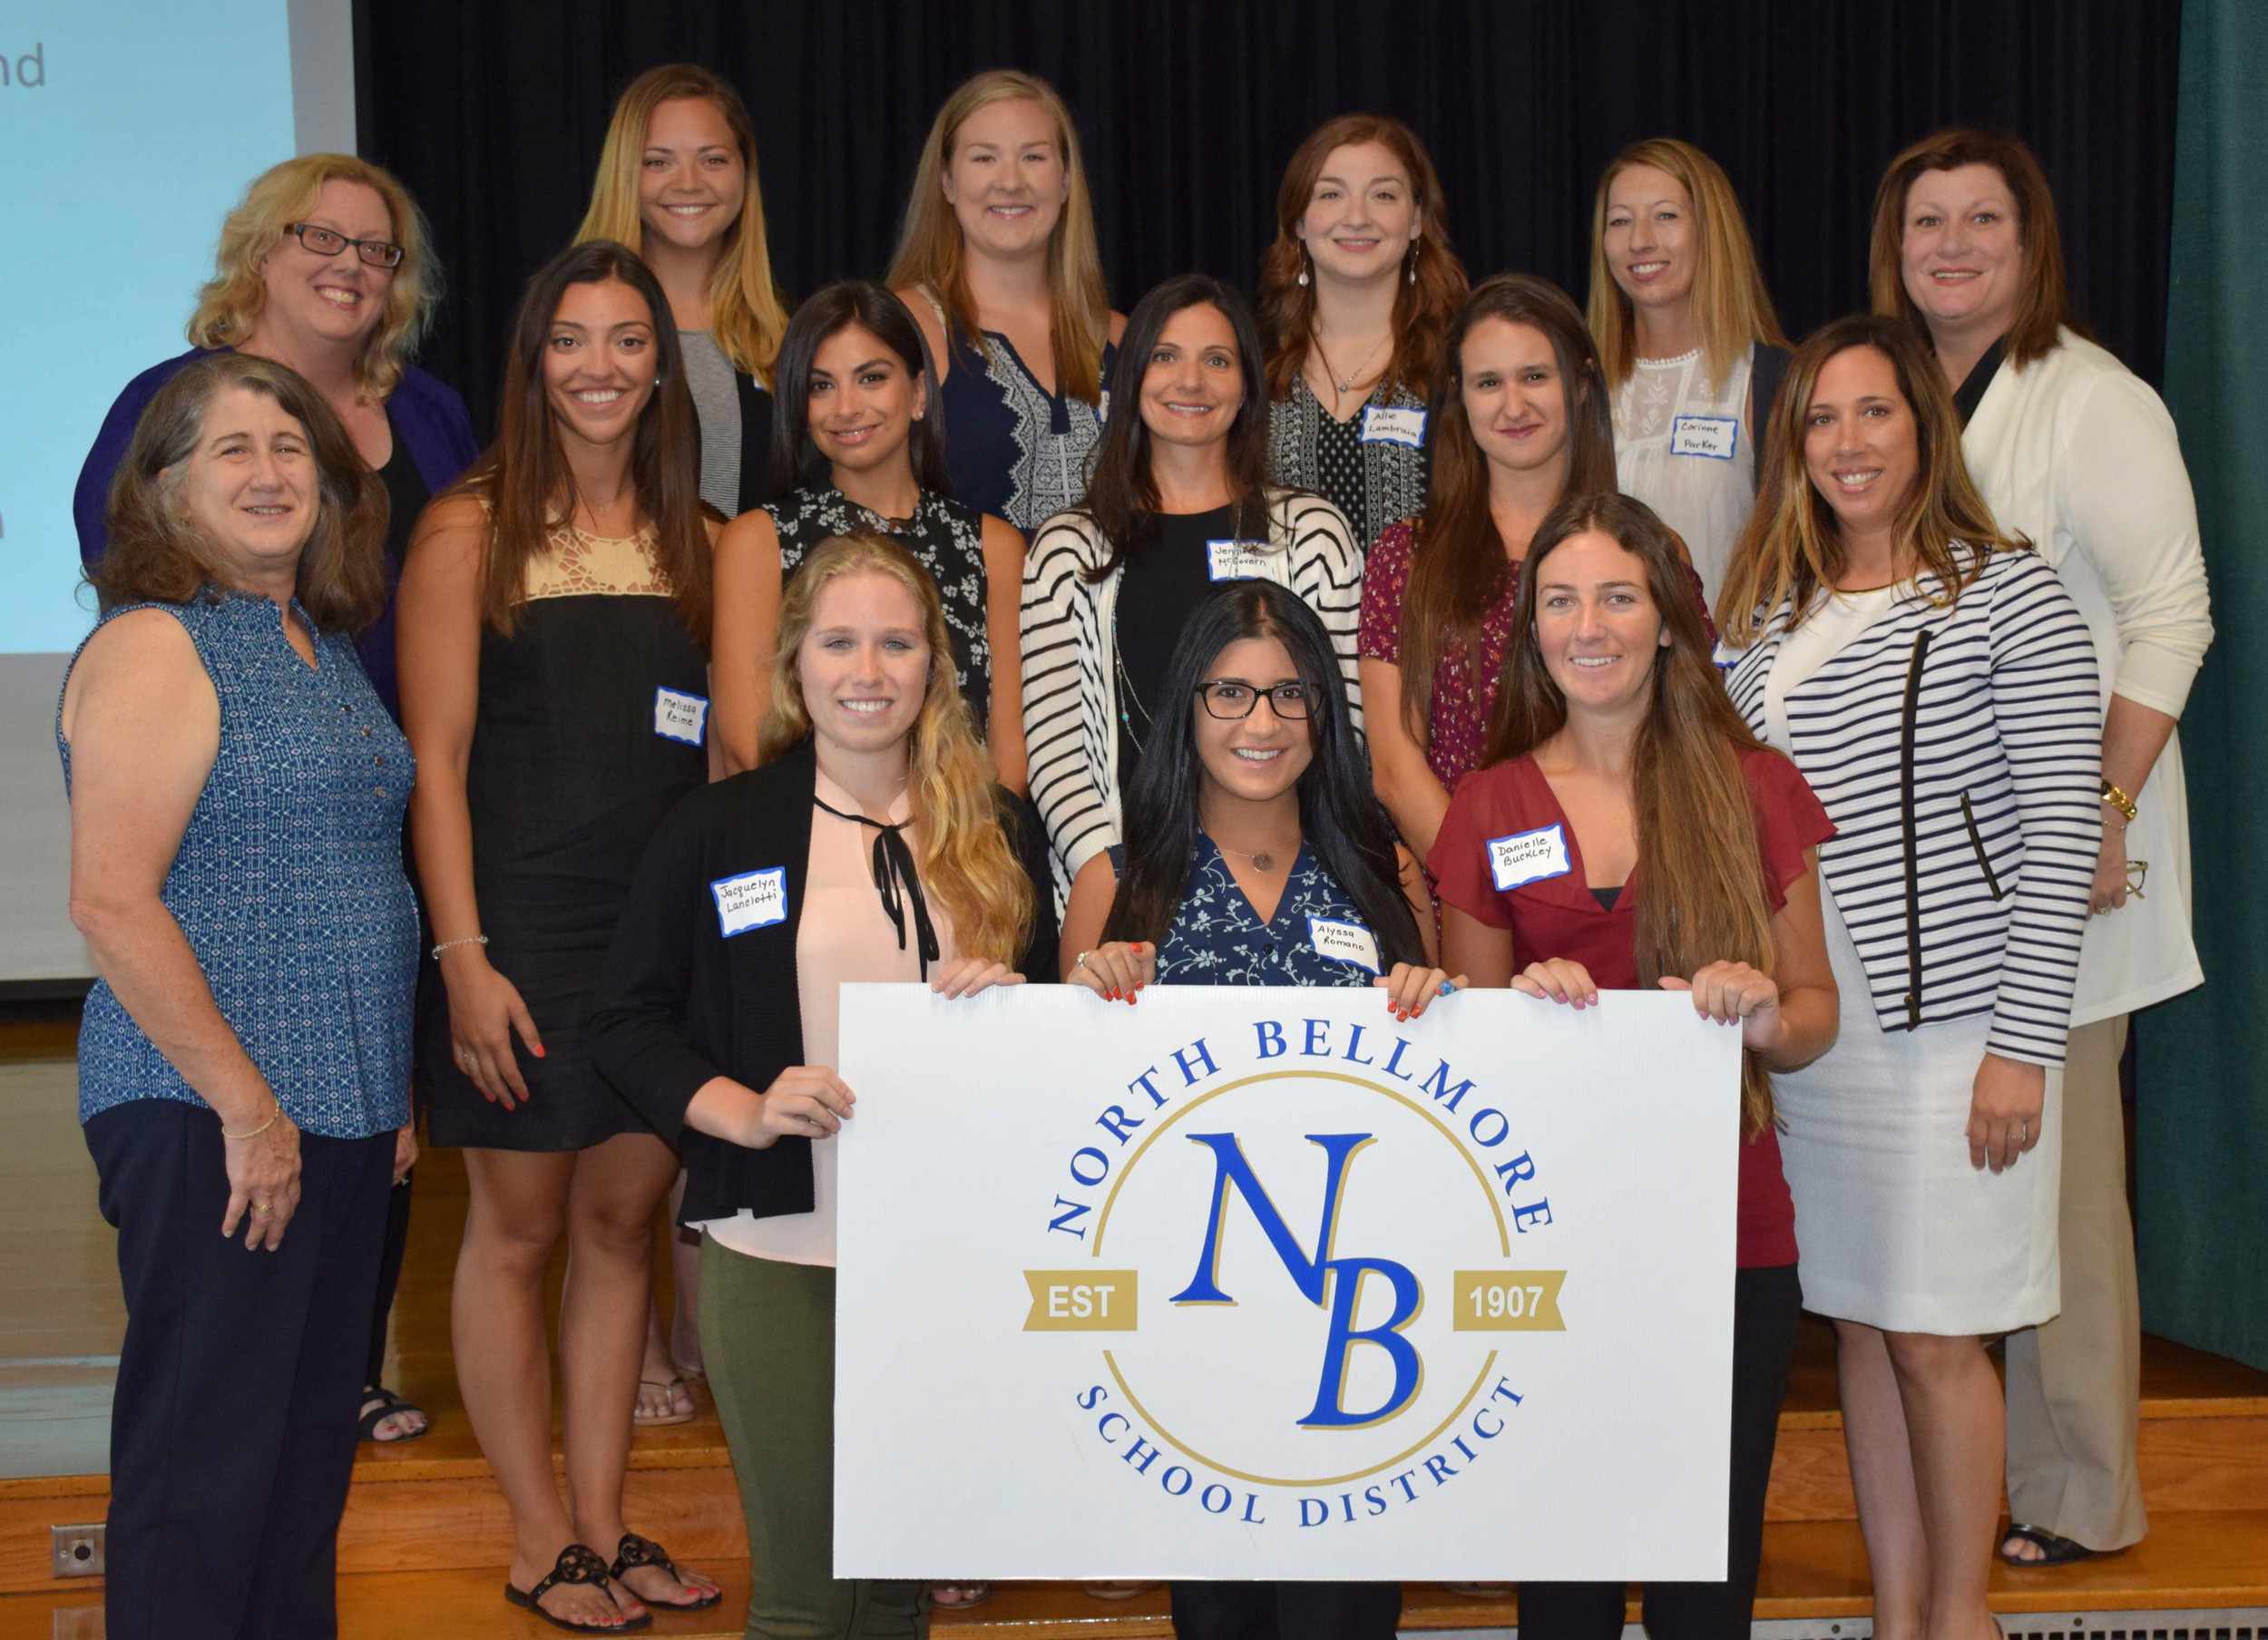 The newest members of the North Bellmore School District's teaching staff were joined by administrators and board of education members at orientation on Aug. 24.